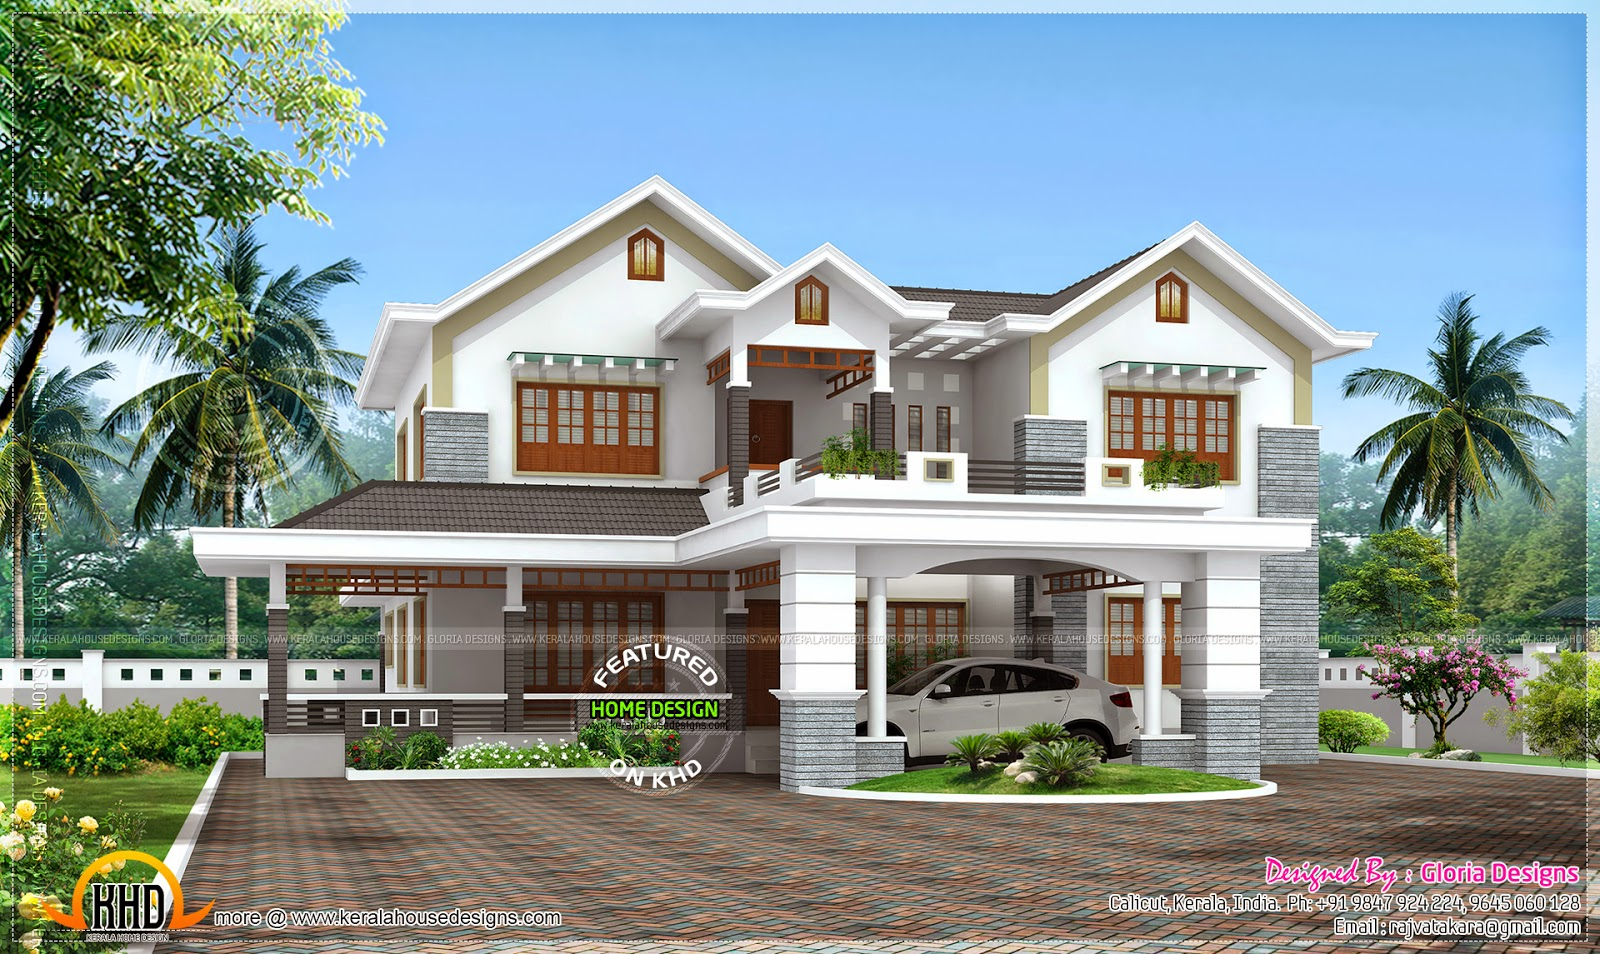 Beautiful 4 bedroom modern house kerala home design and for Beautiful home designs